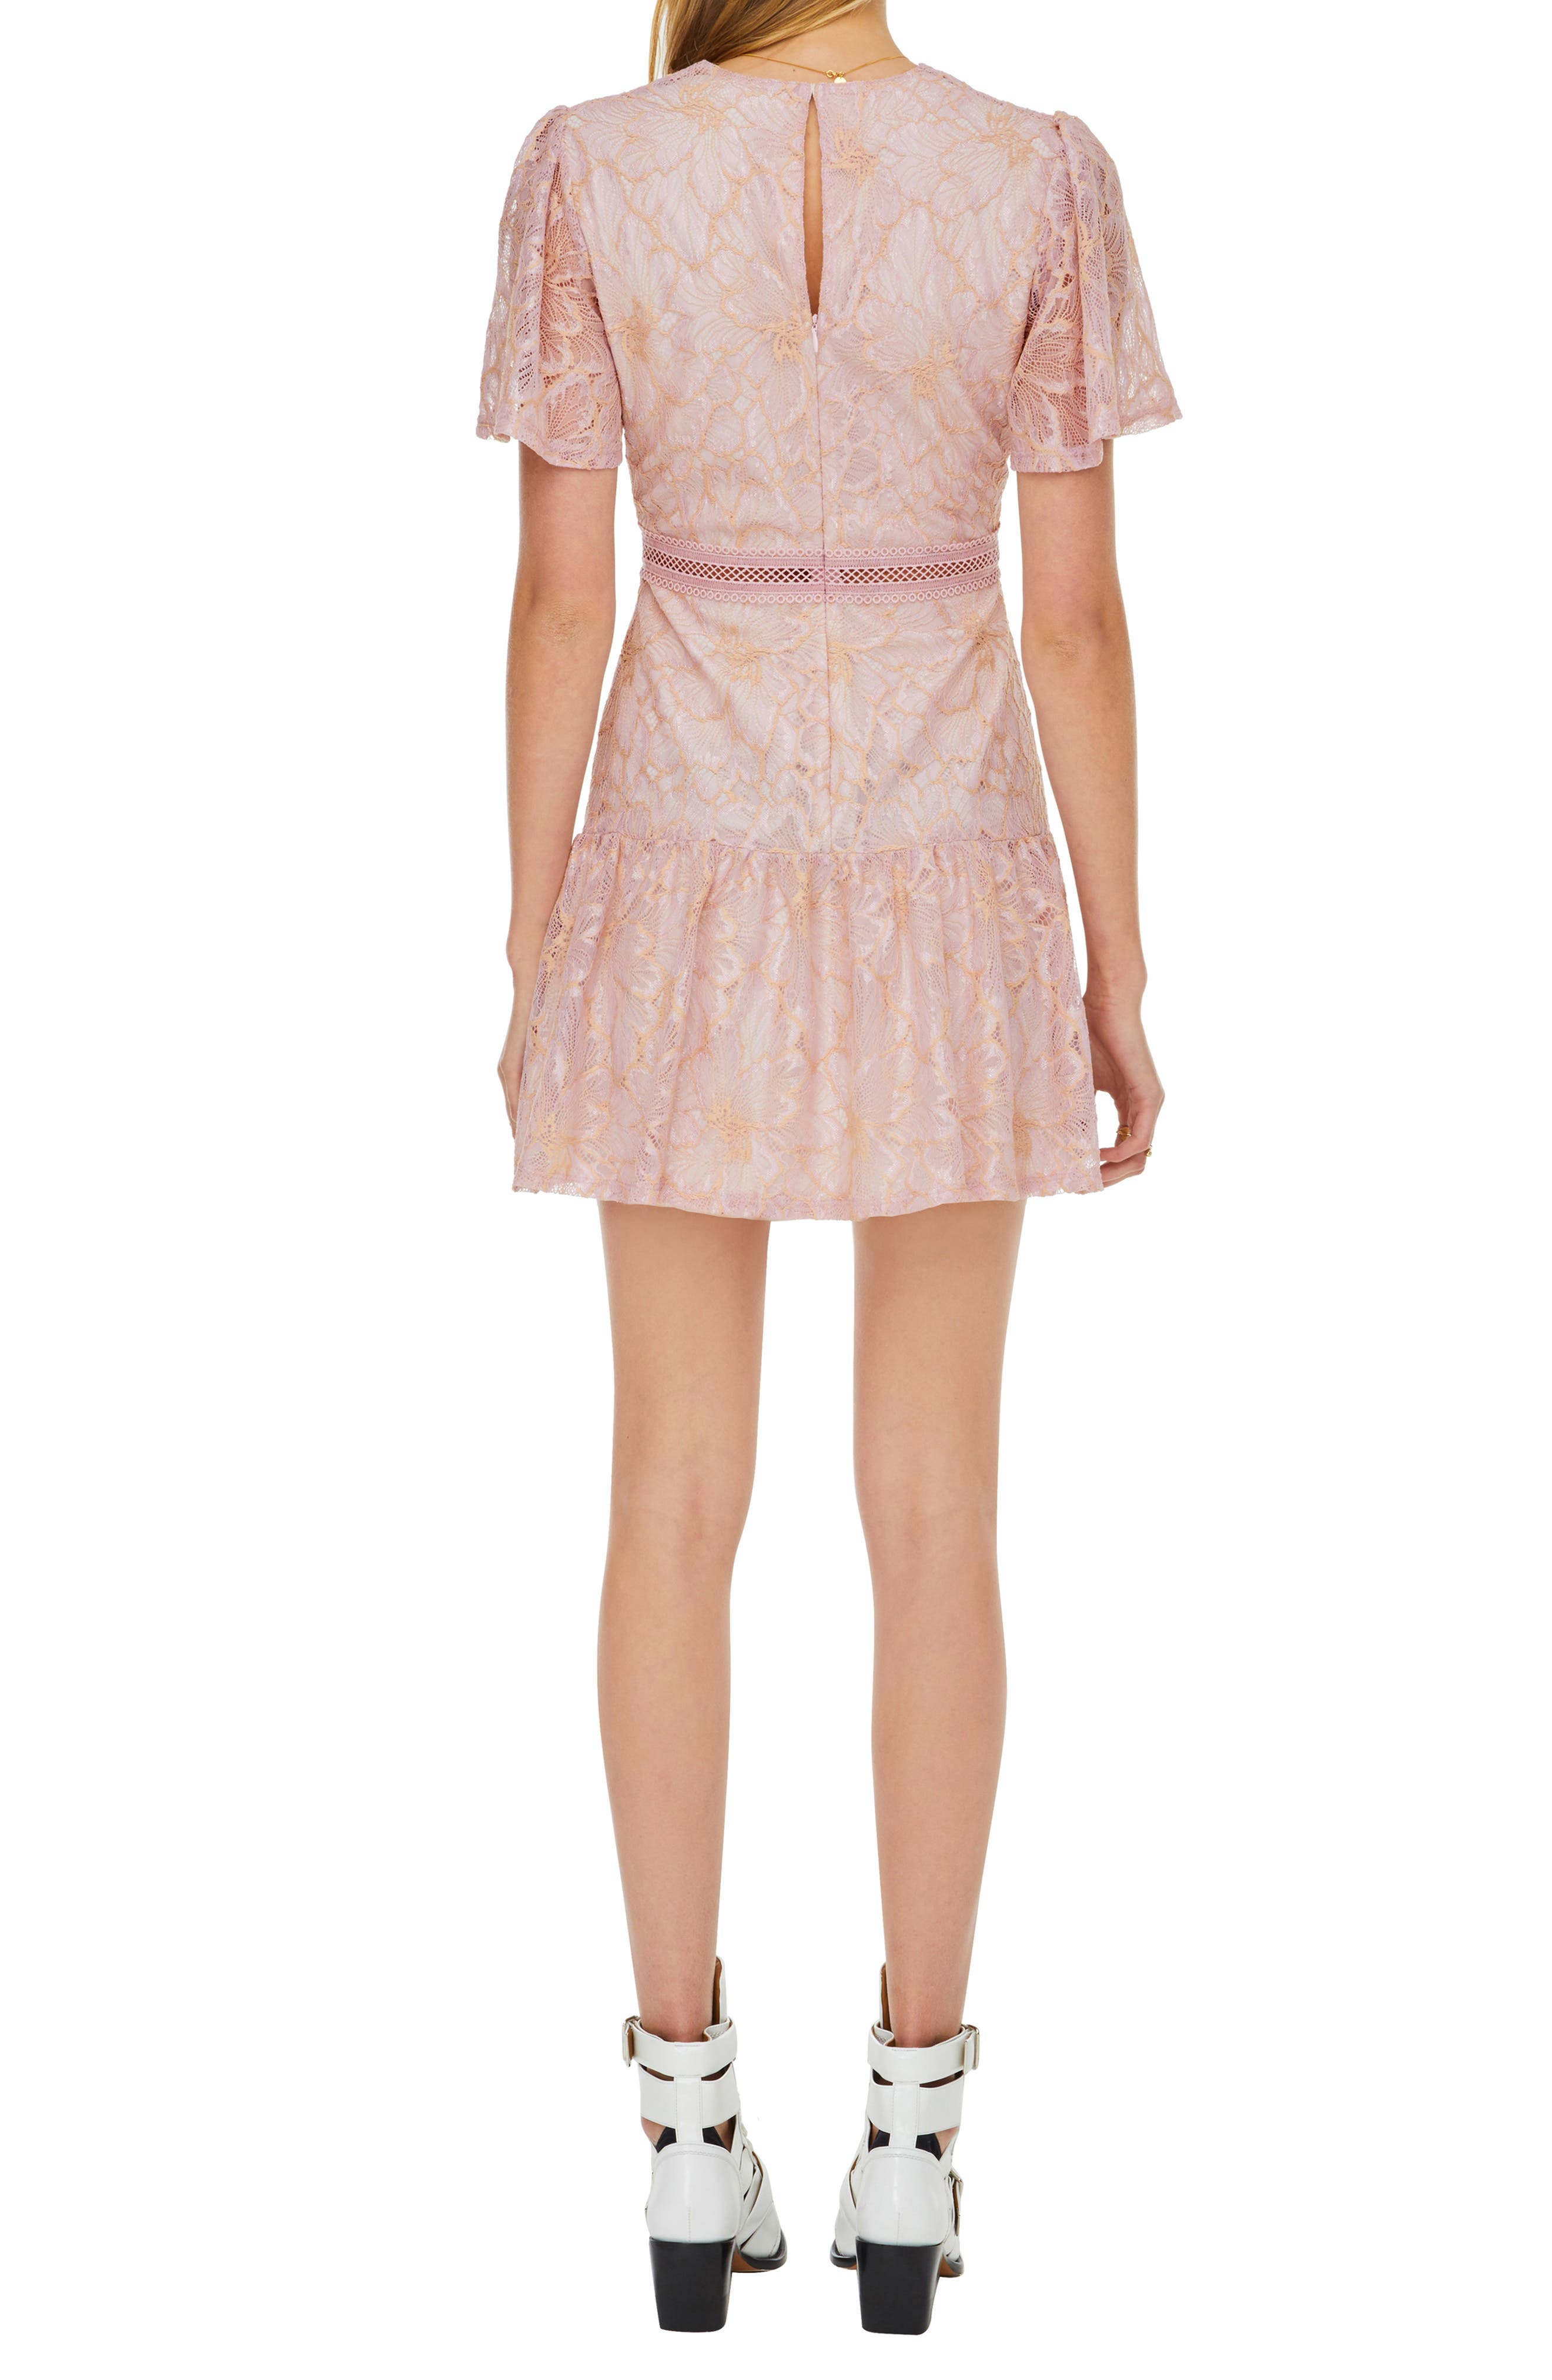 Muse Lace Skater Dress,                             Alternate thumbnail 2, color,                             ICY PINK